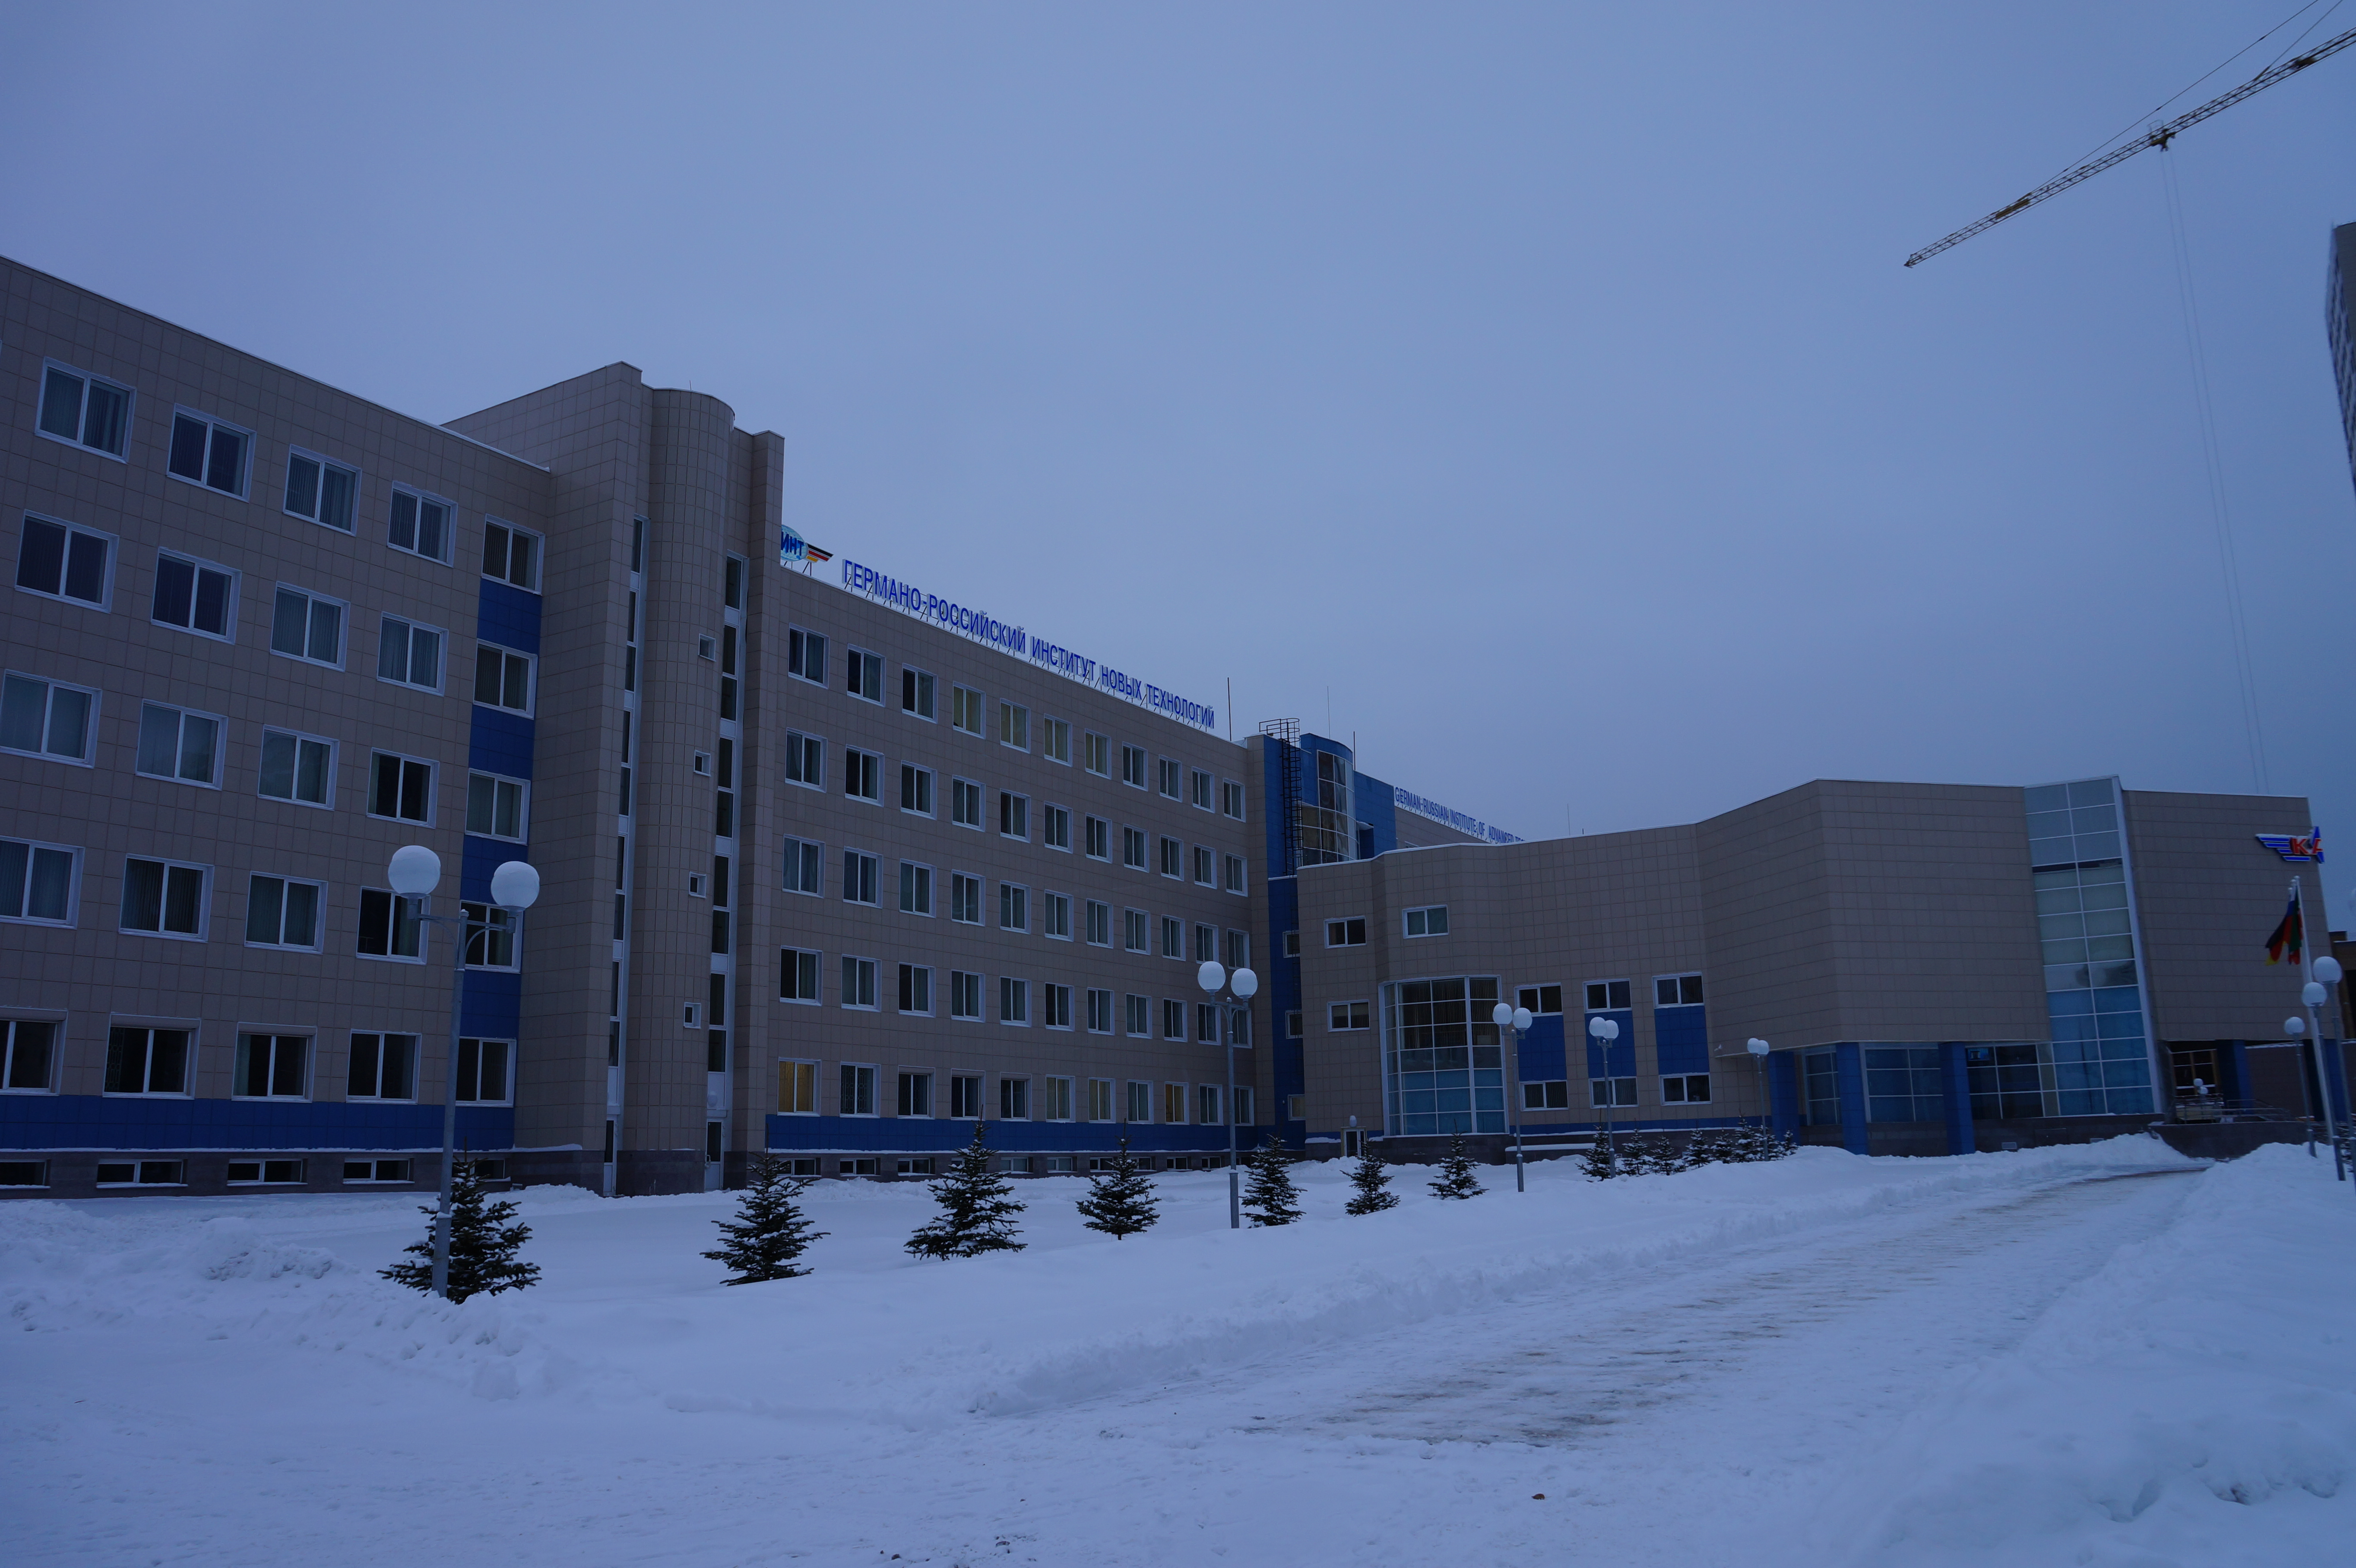 German-Russian Institute of Advanced Technologies, home of the KQC